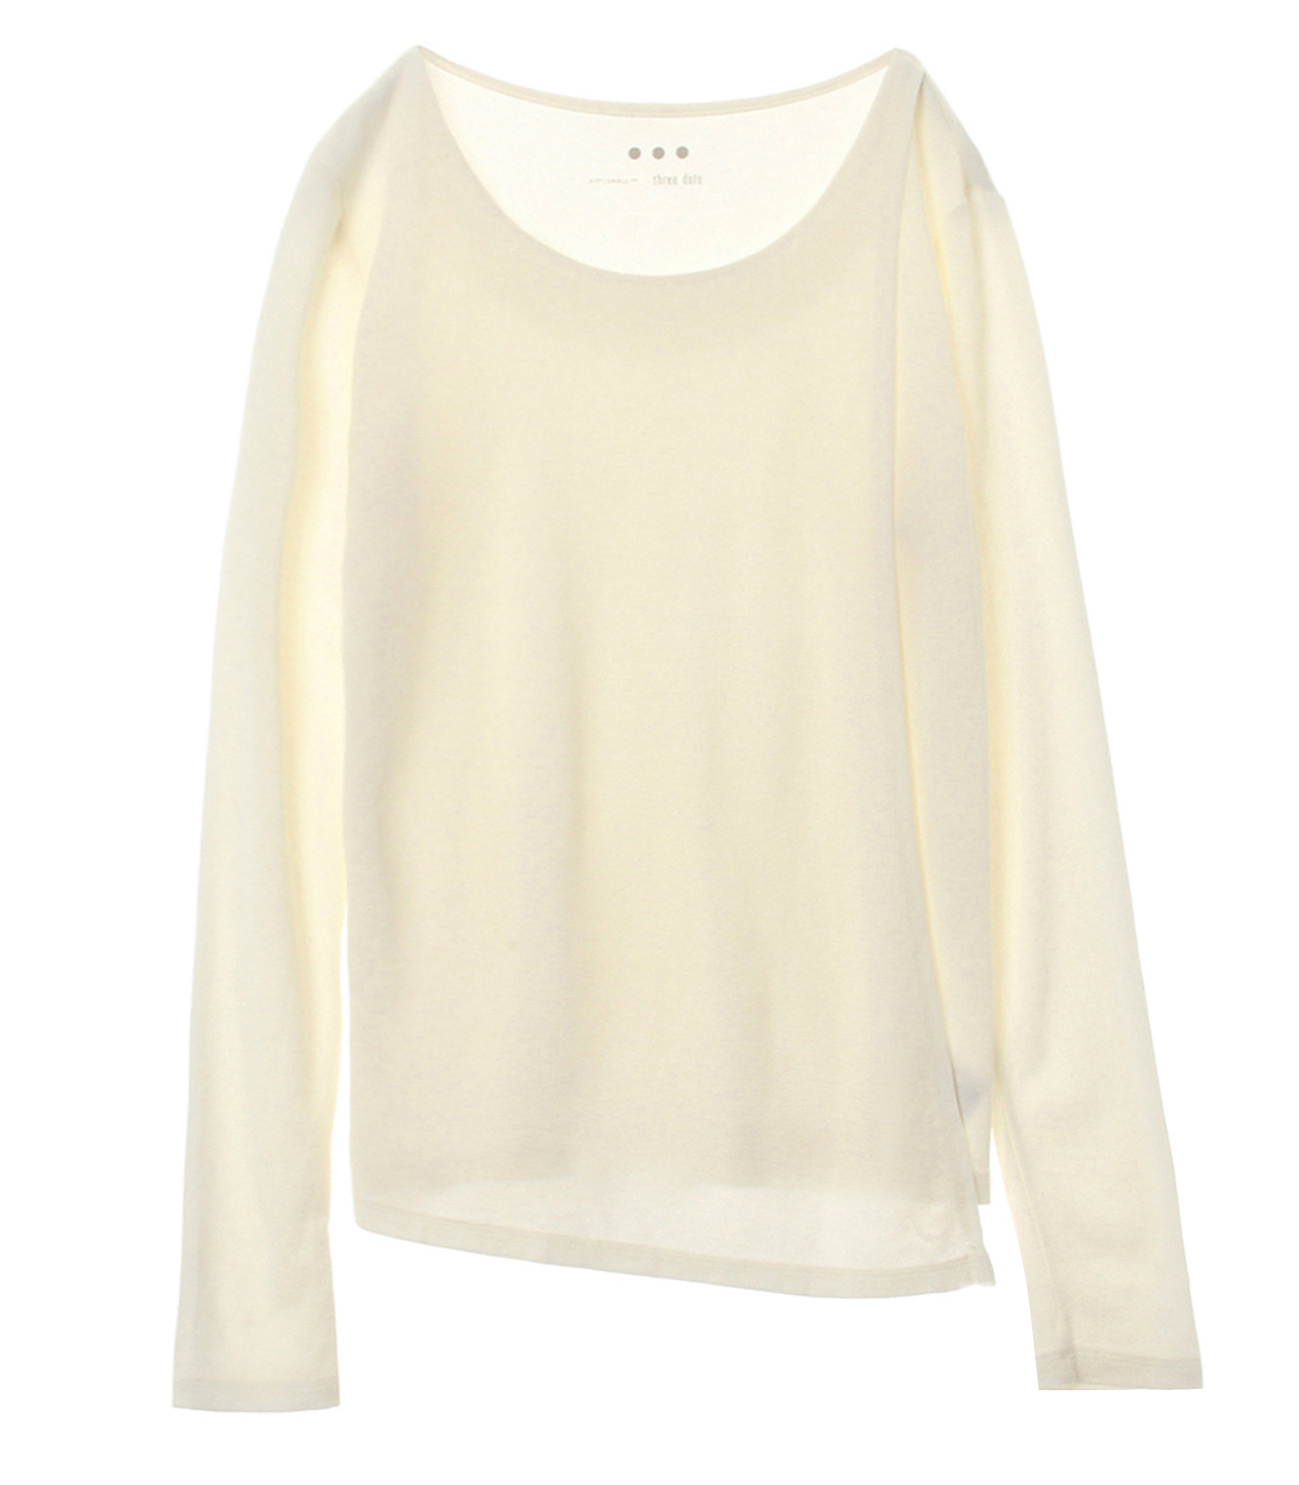 Sustainable jersey l/s layered t 詳細画像 white 1